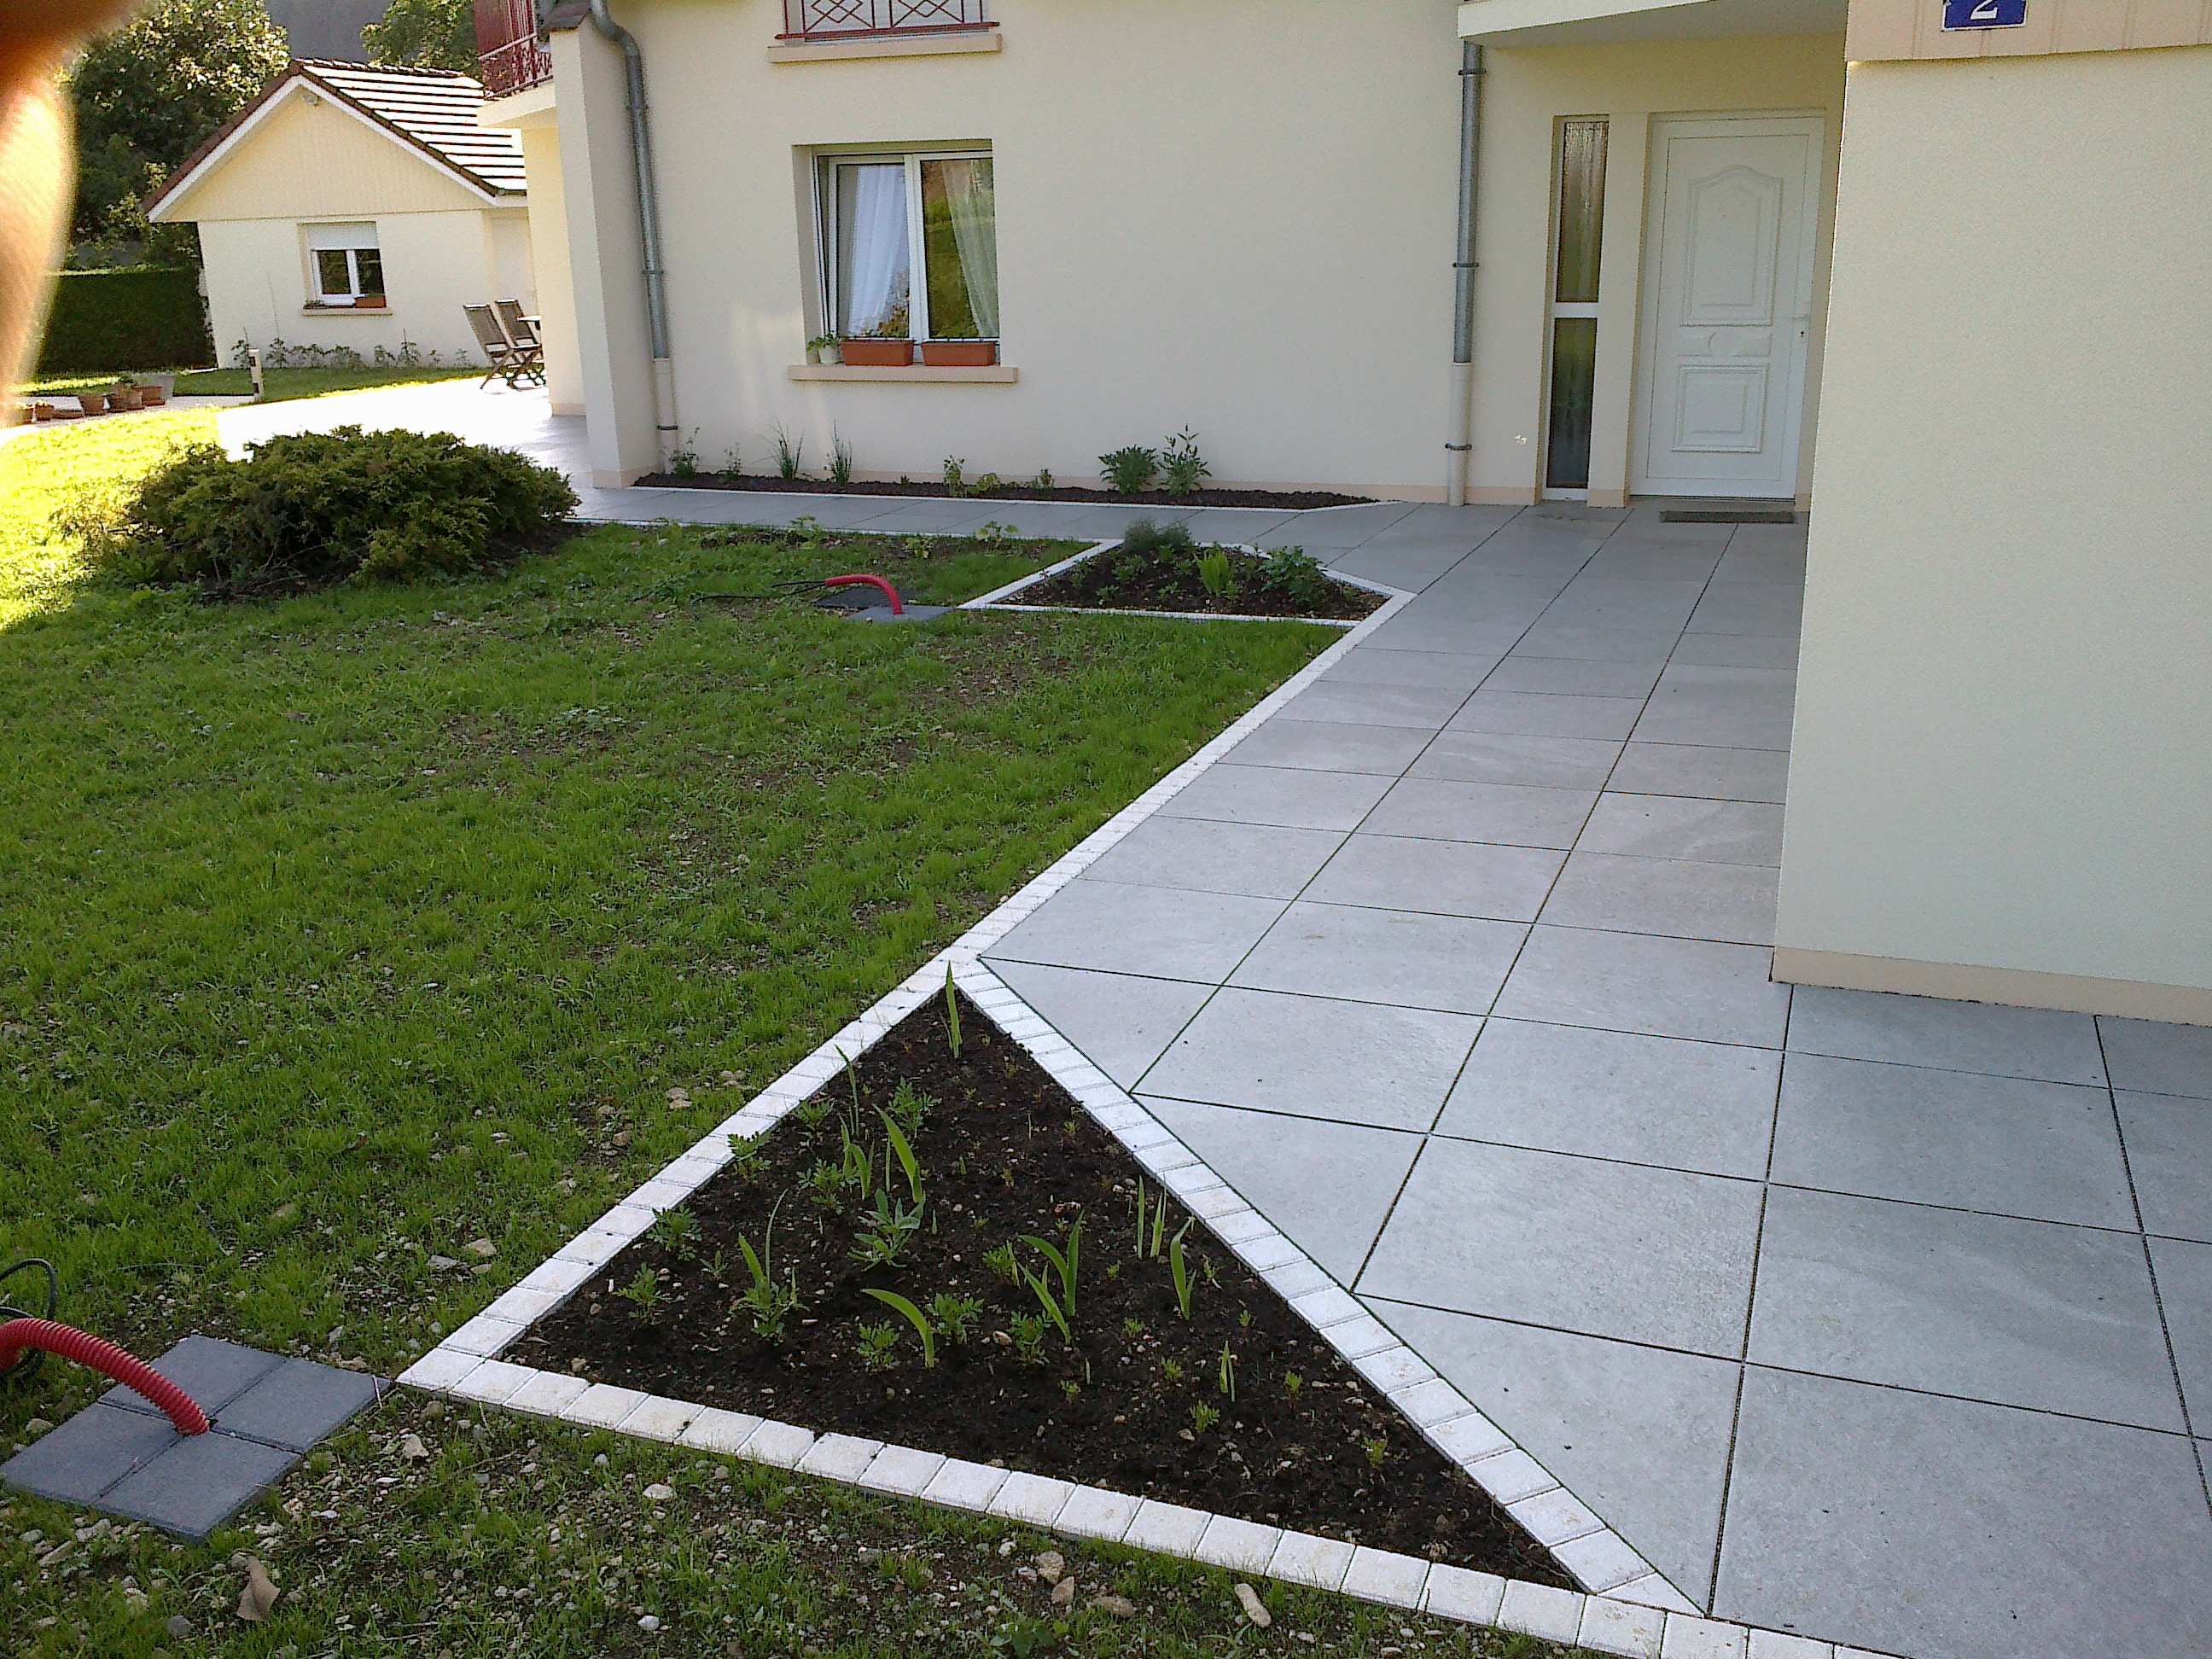 Bordure cassard for Plante pour bordure de terrasse